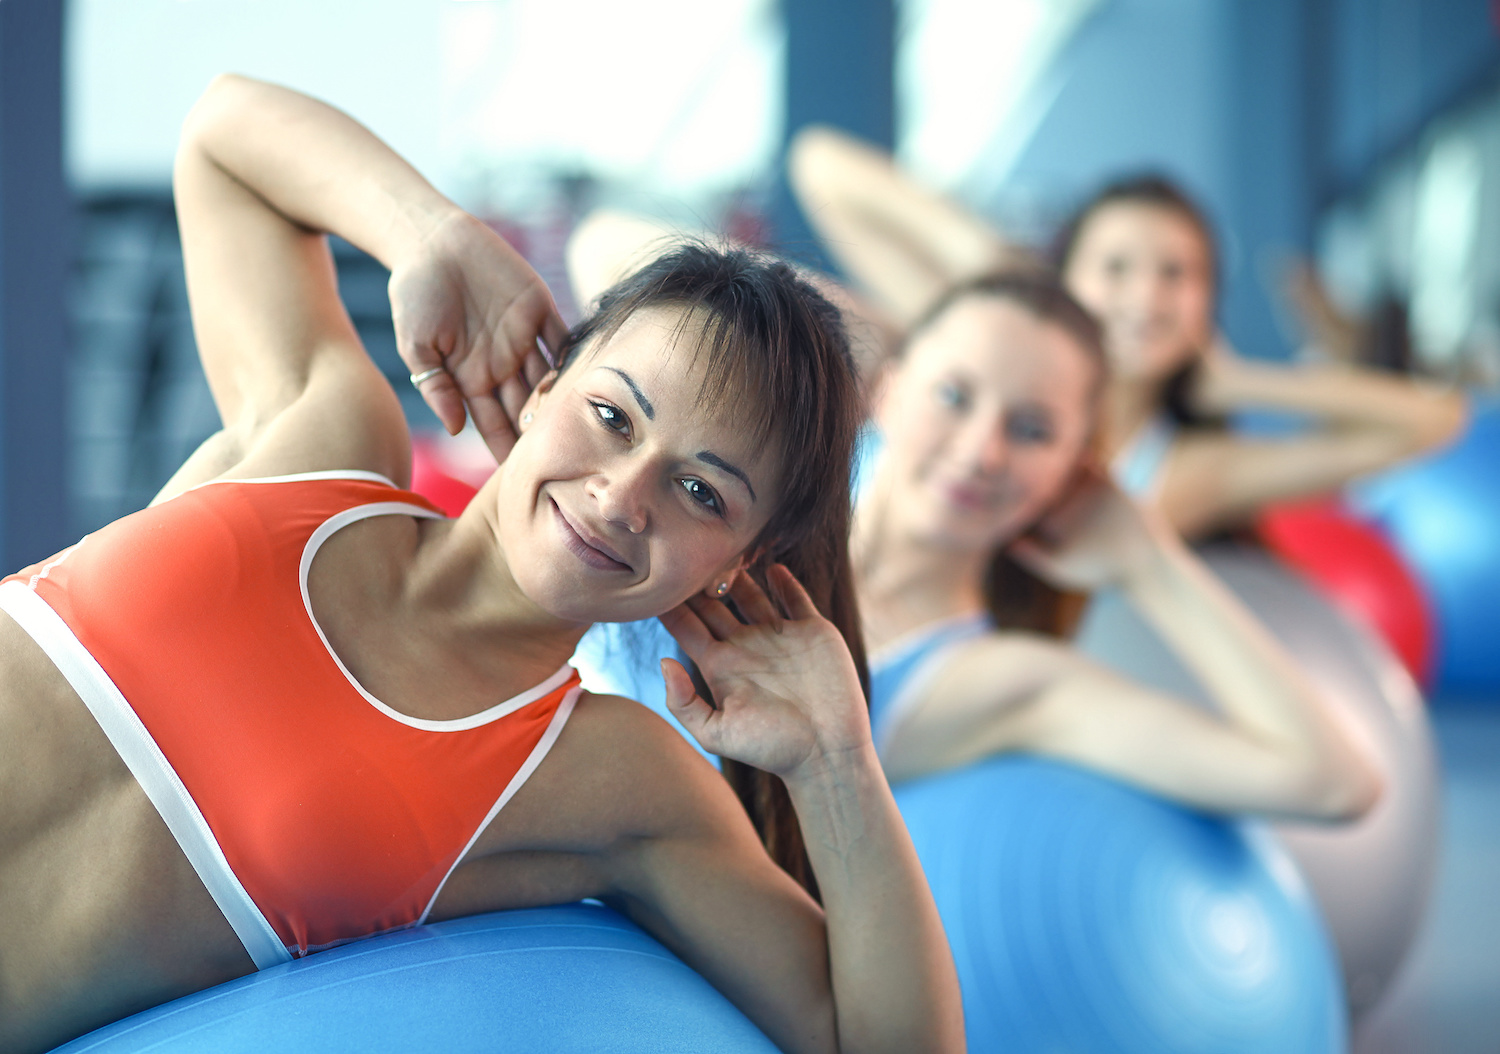 come in and tour our facility! we love adding new friends to our workout family. -